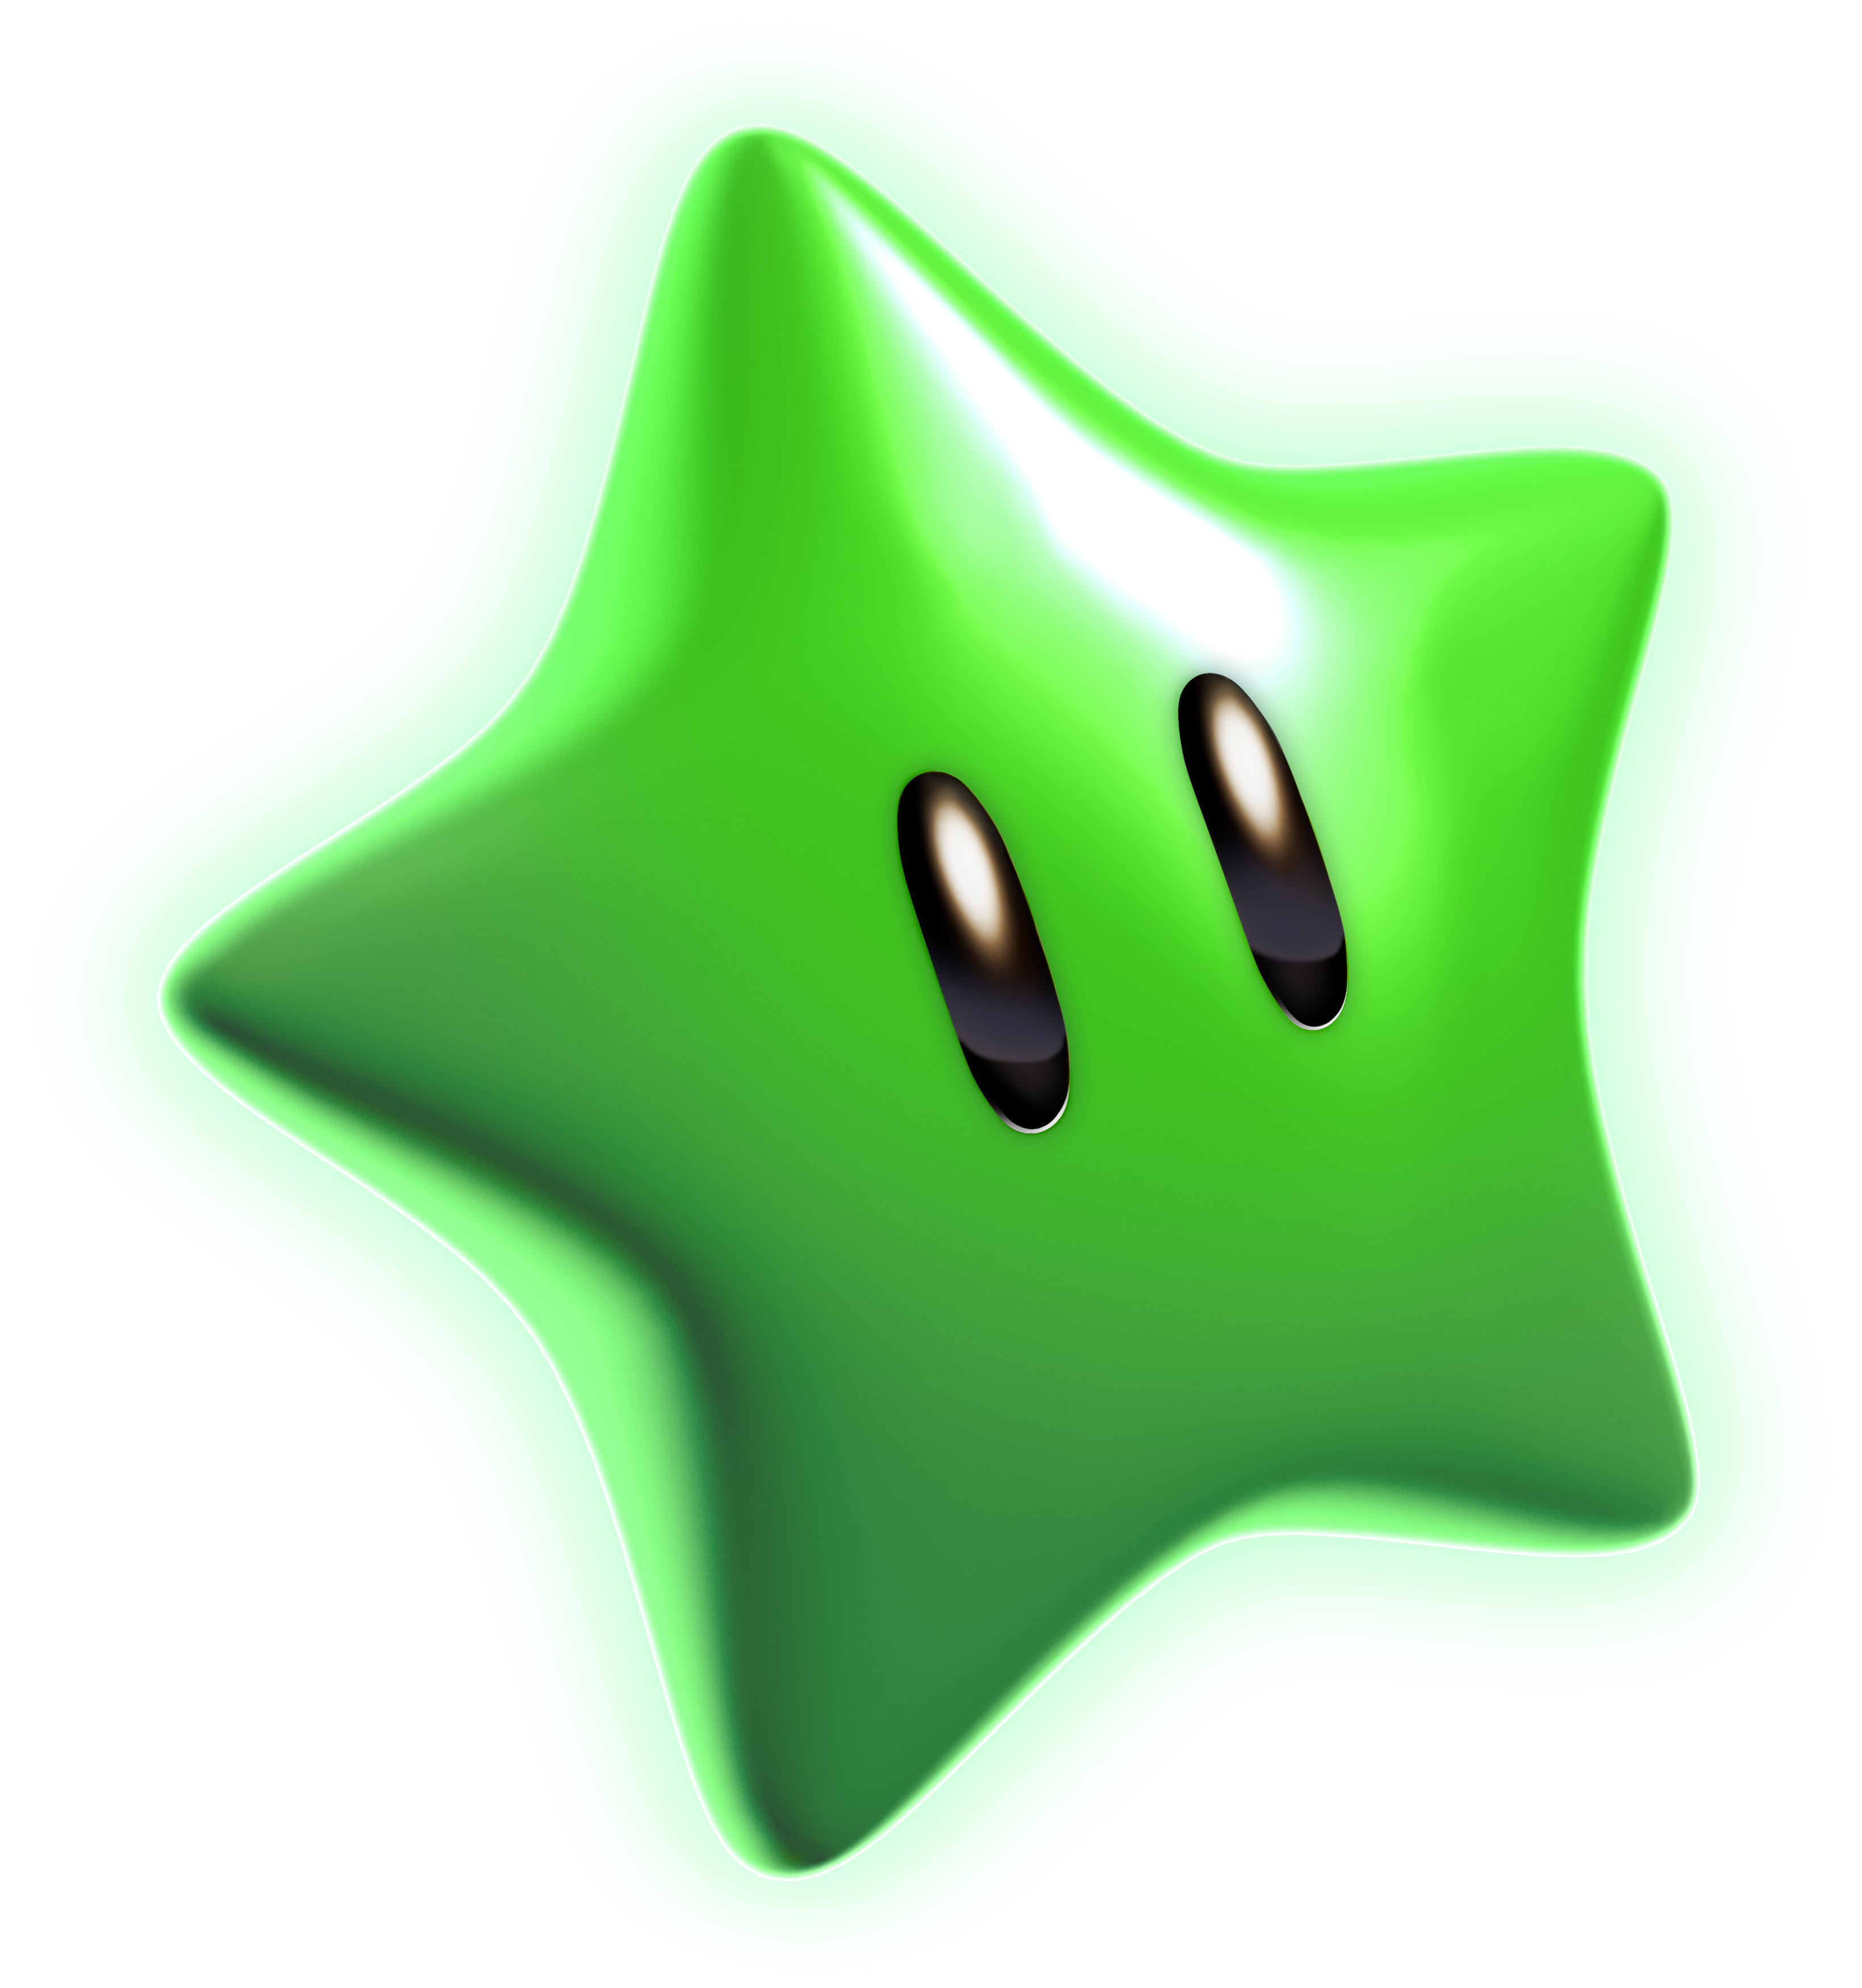 Super mario star png. Image green artwork d